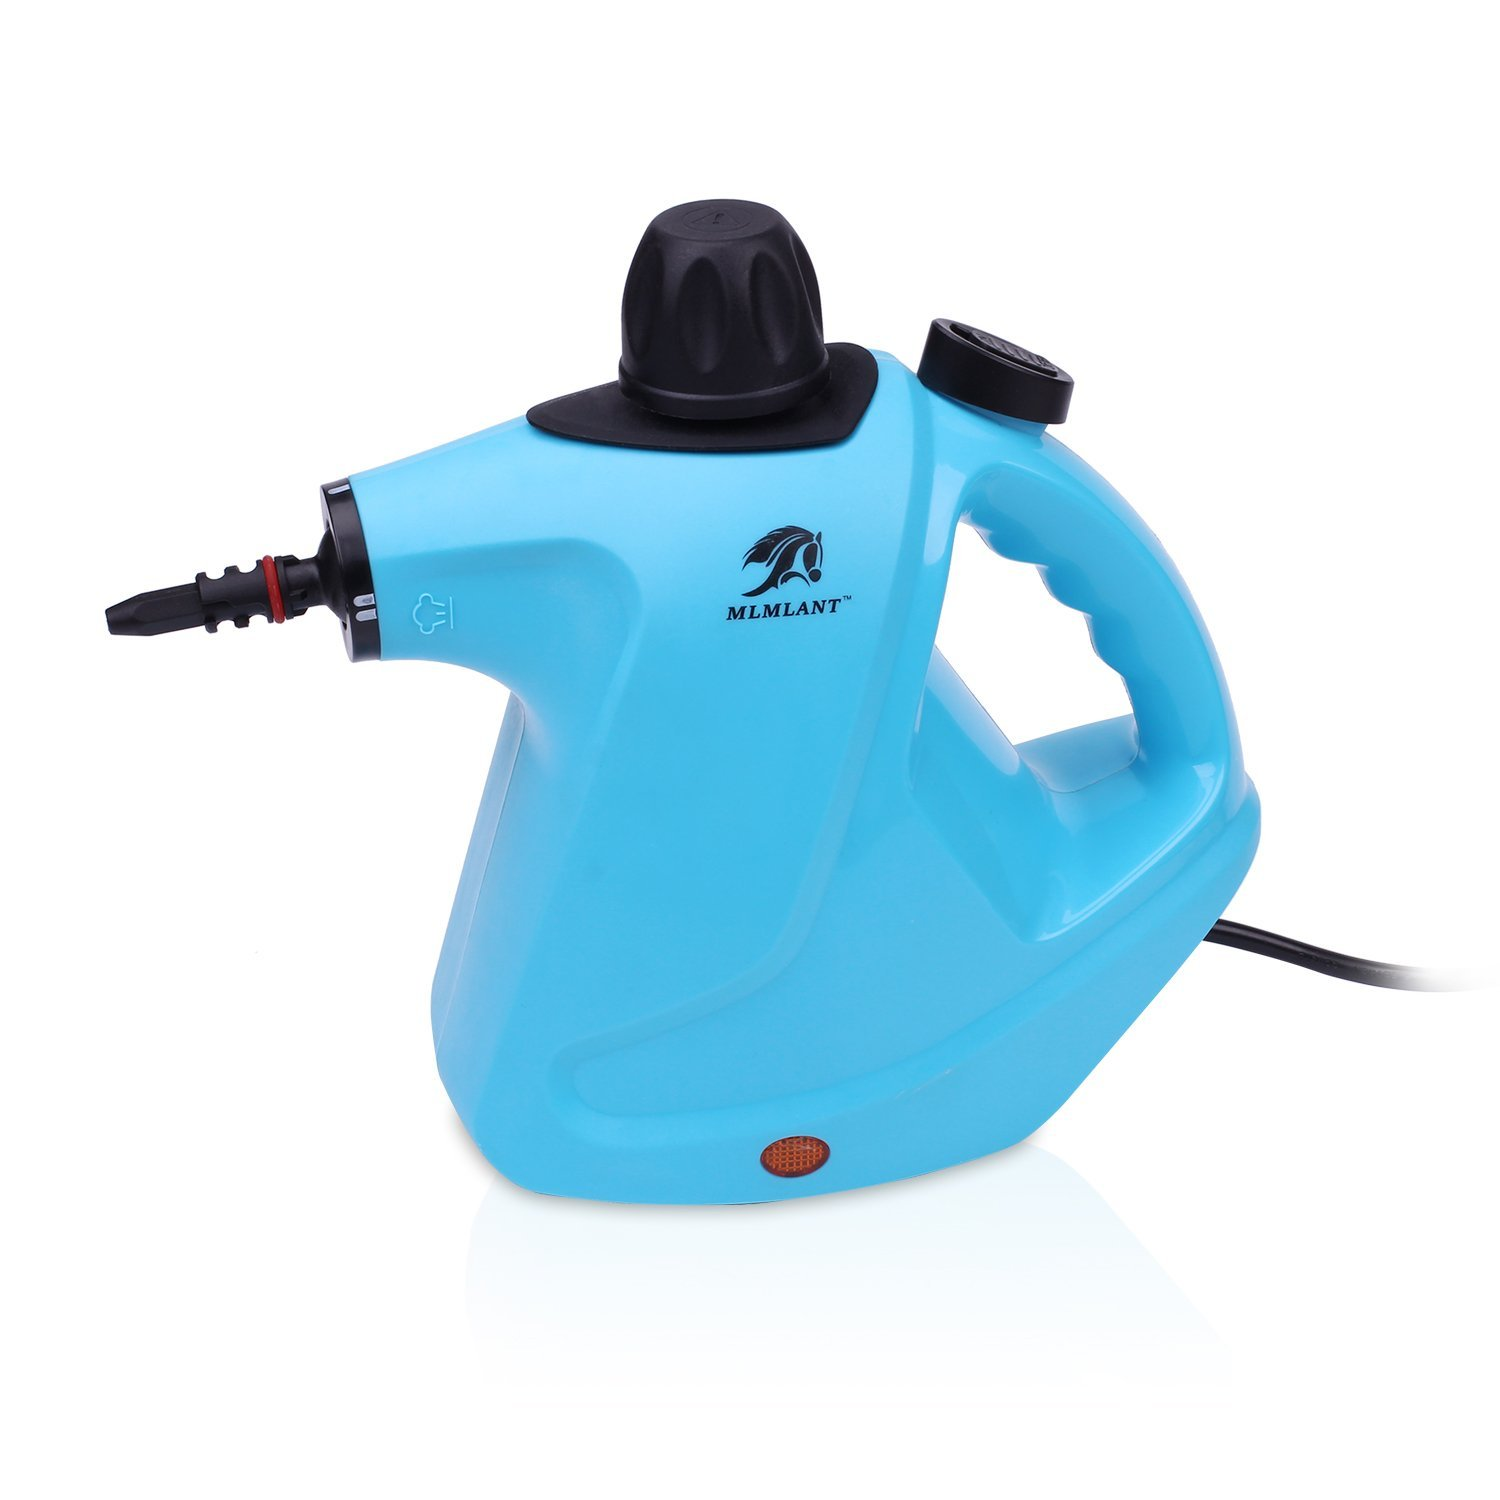 MLMLANT Handheld Pressurized Steam Cleaner with 9-Piece Accessory Set - Multi-Purpose and Multi-Surface All Natural, Chemical-Free Steam Cleaning for Home, Auto, Patio, More MARYANT INC.